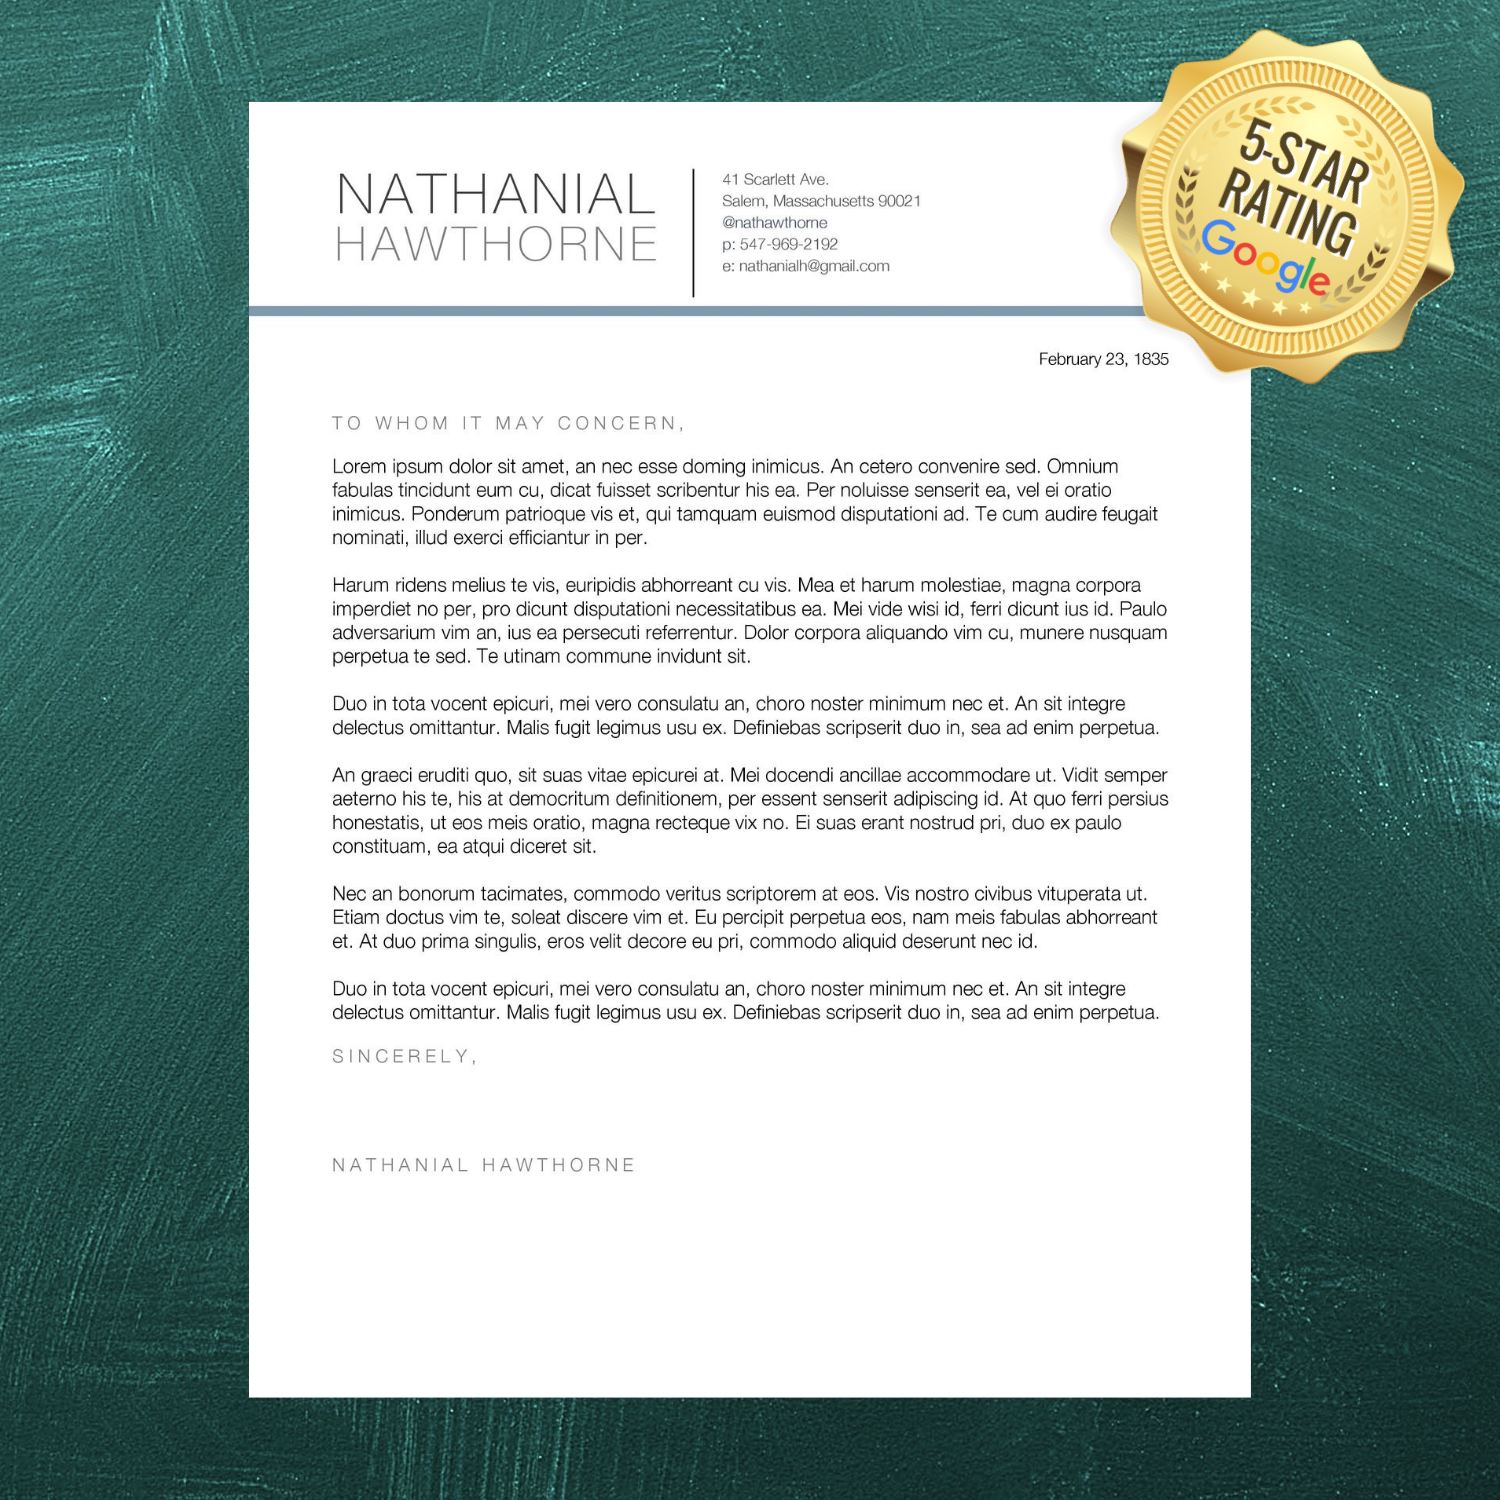 A well-crafted cover letter is the best way to tell employers who you are, what you've accomplished, and how you can add value to their company.